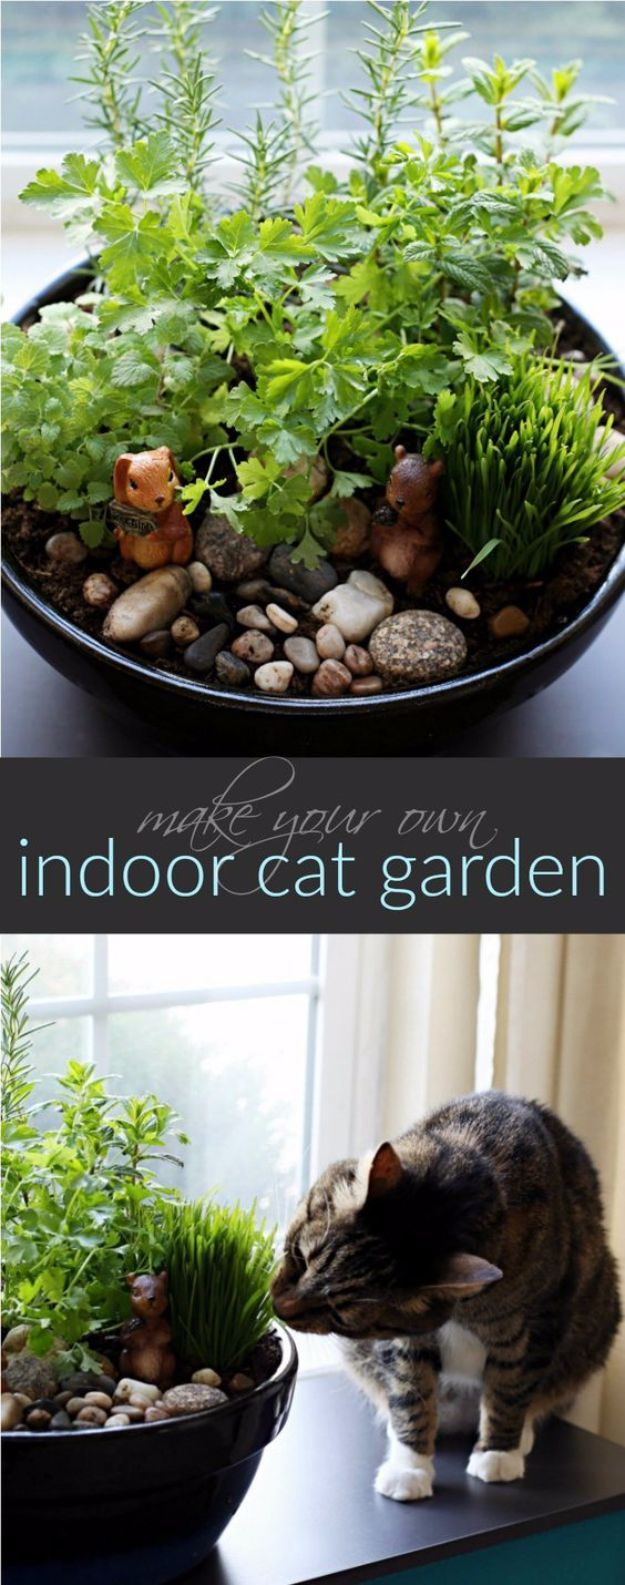 DIY Cat Hacks - Make Your Own Cat Indoor Garden - Tips and Tricks Ideas for Cat Beds and Toys, Homemade Remedies for Fleas and Scratching - Do It Yourself Cat Treat Recips, Food and Gear for Your Pet - Cool Gifts for Cats http://diyjoy.com/diy-cat-hacks